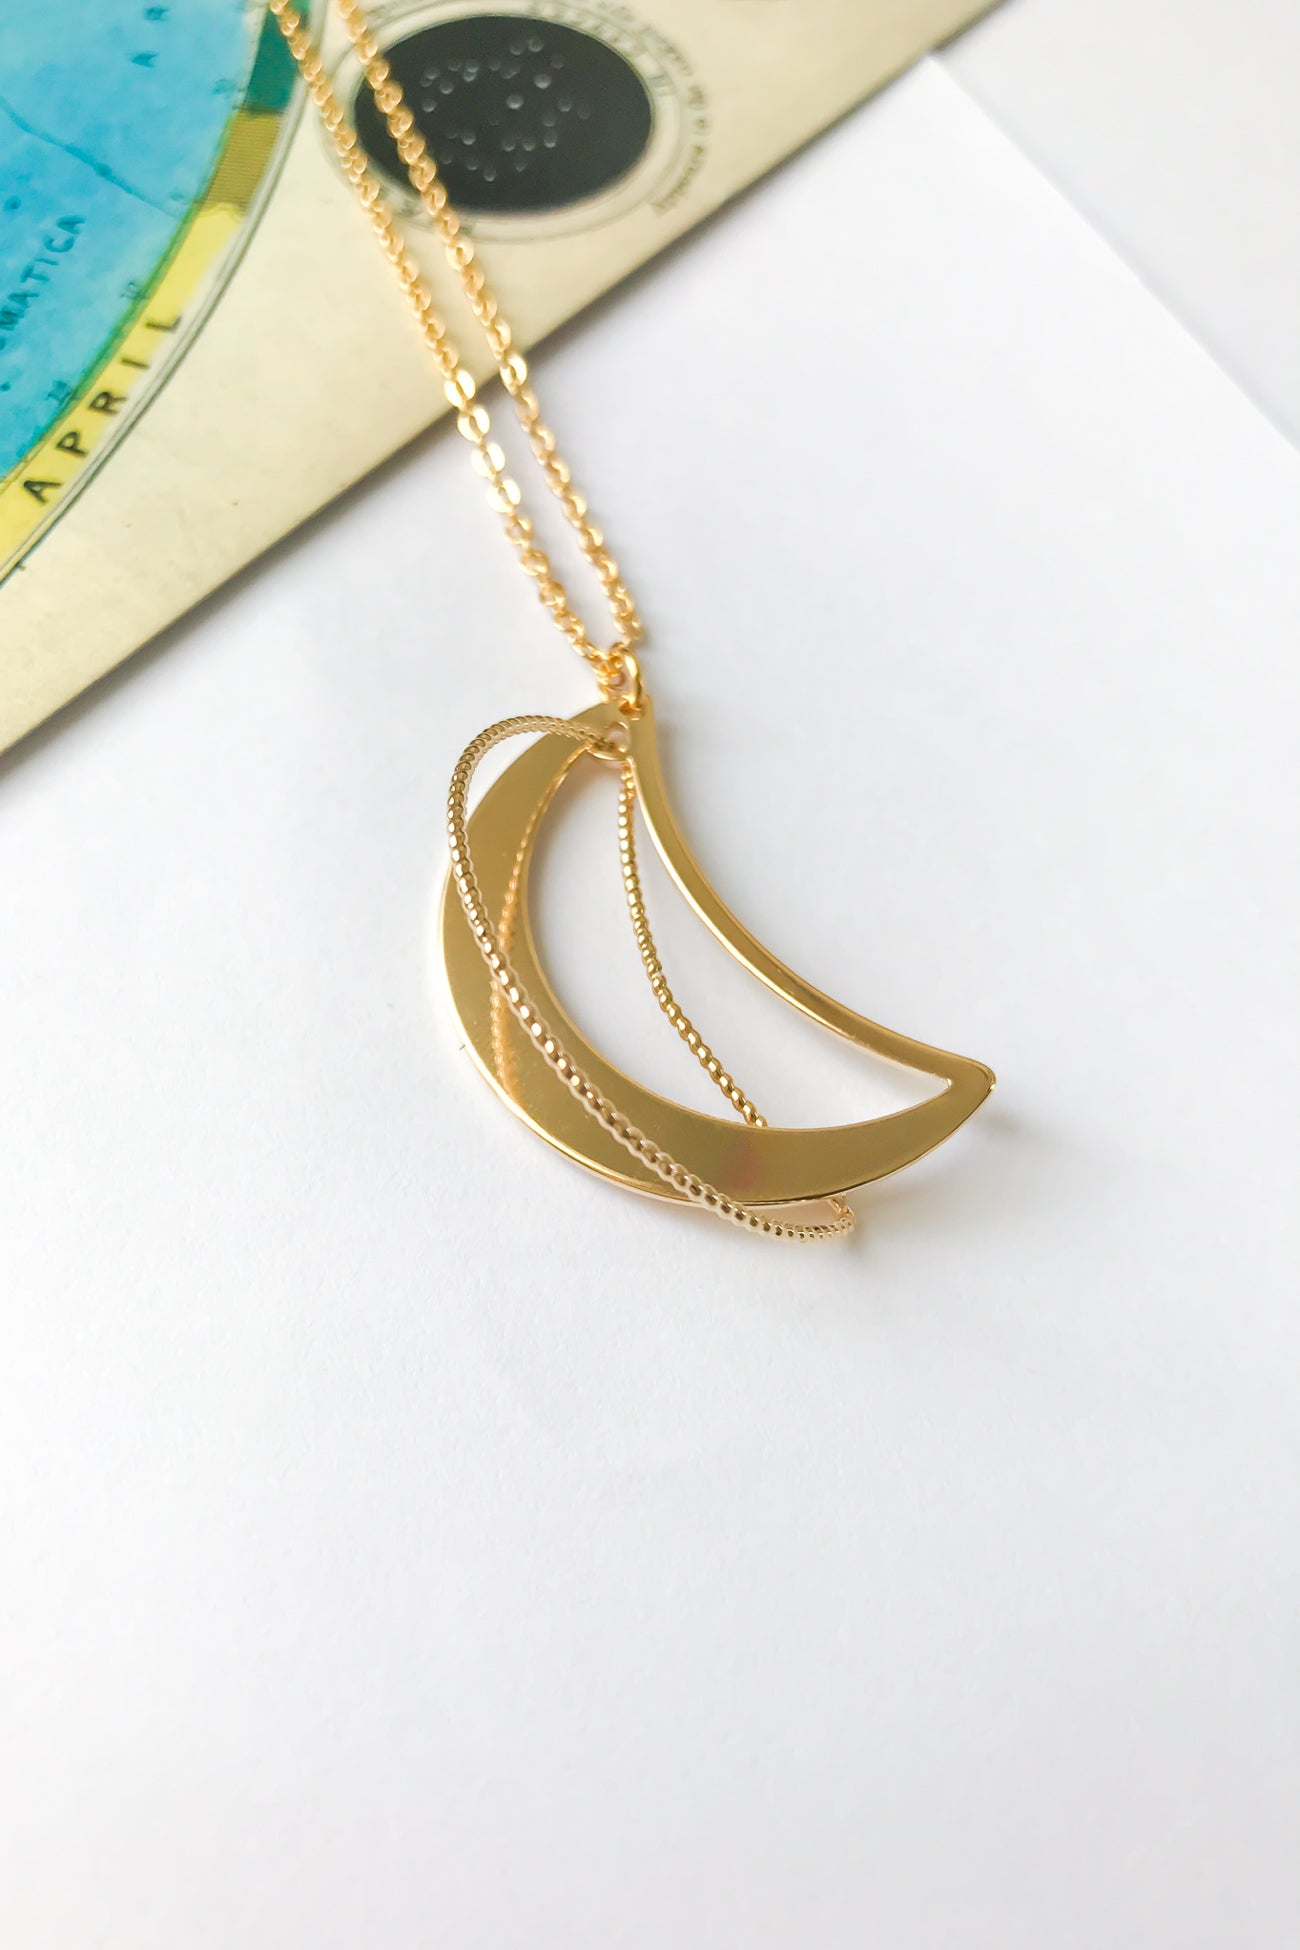 3D crescent moon necklace